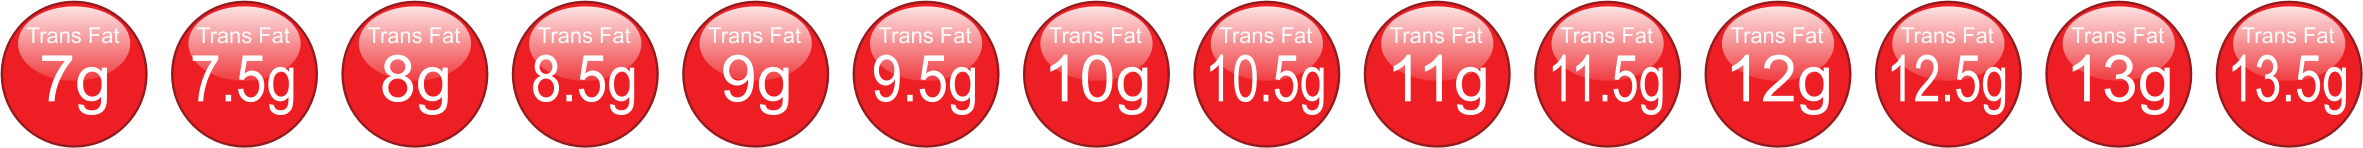 Trans fat icons - 7g to 13.5g by jhnri4